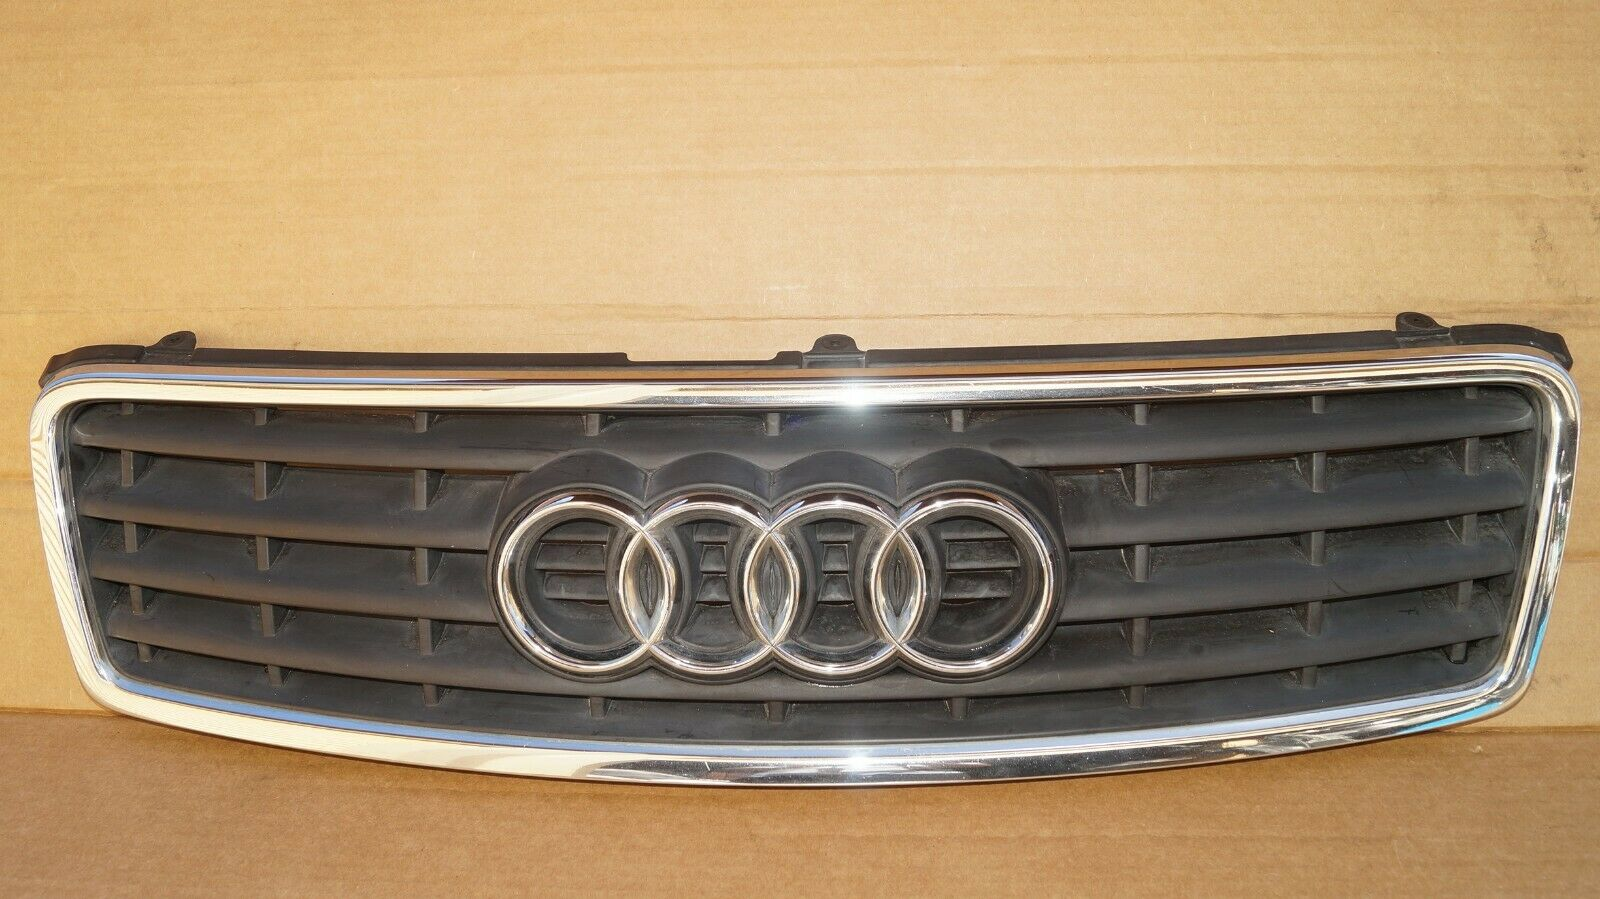 03 04 05 06 AUDI A4 CONVERTIBLE FRONT HOOD UPPER TOP GRILLE 8H0853653